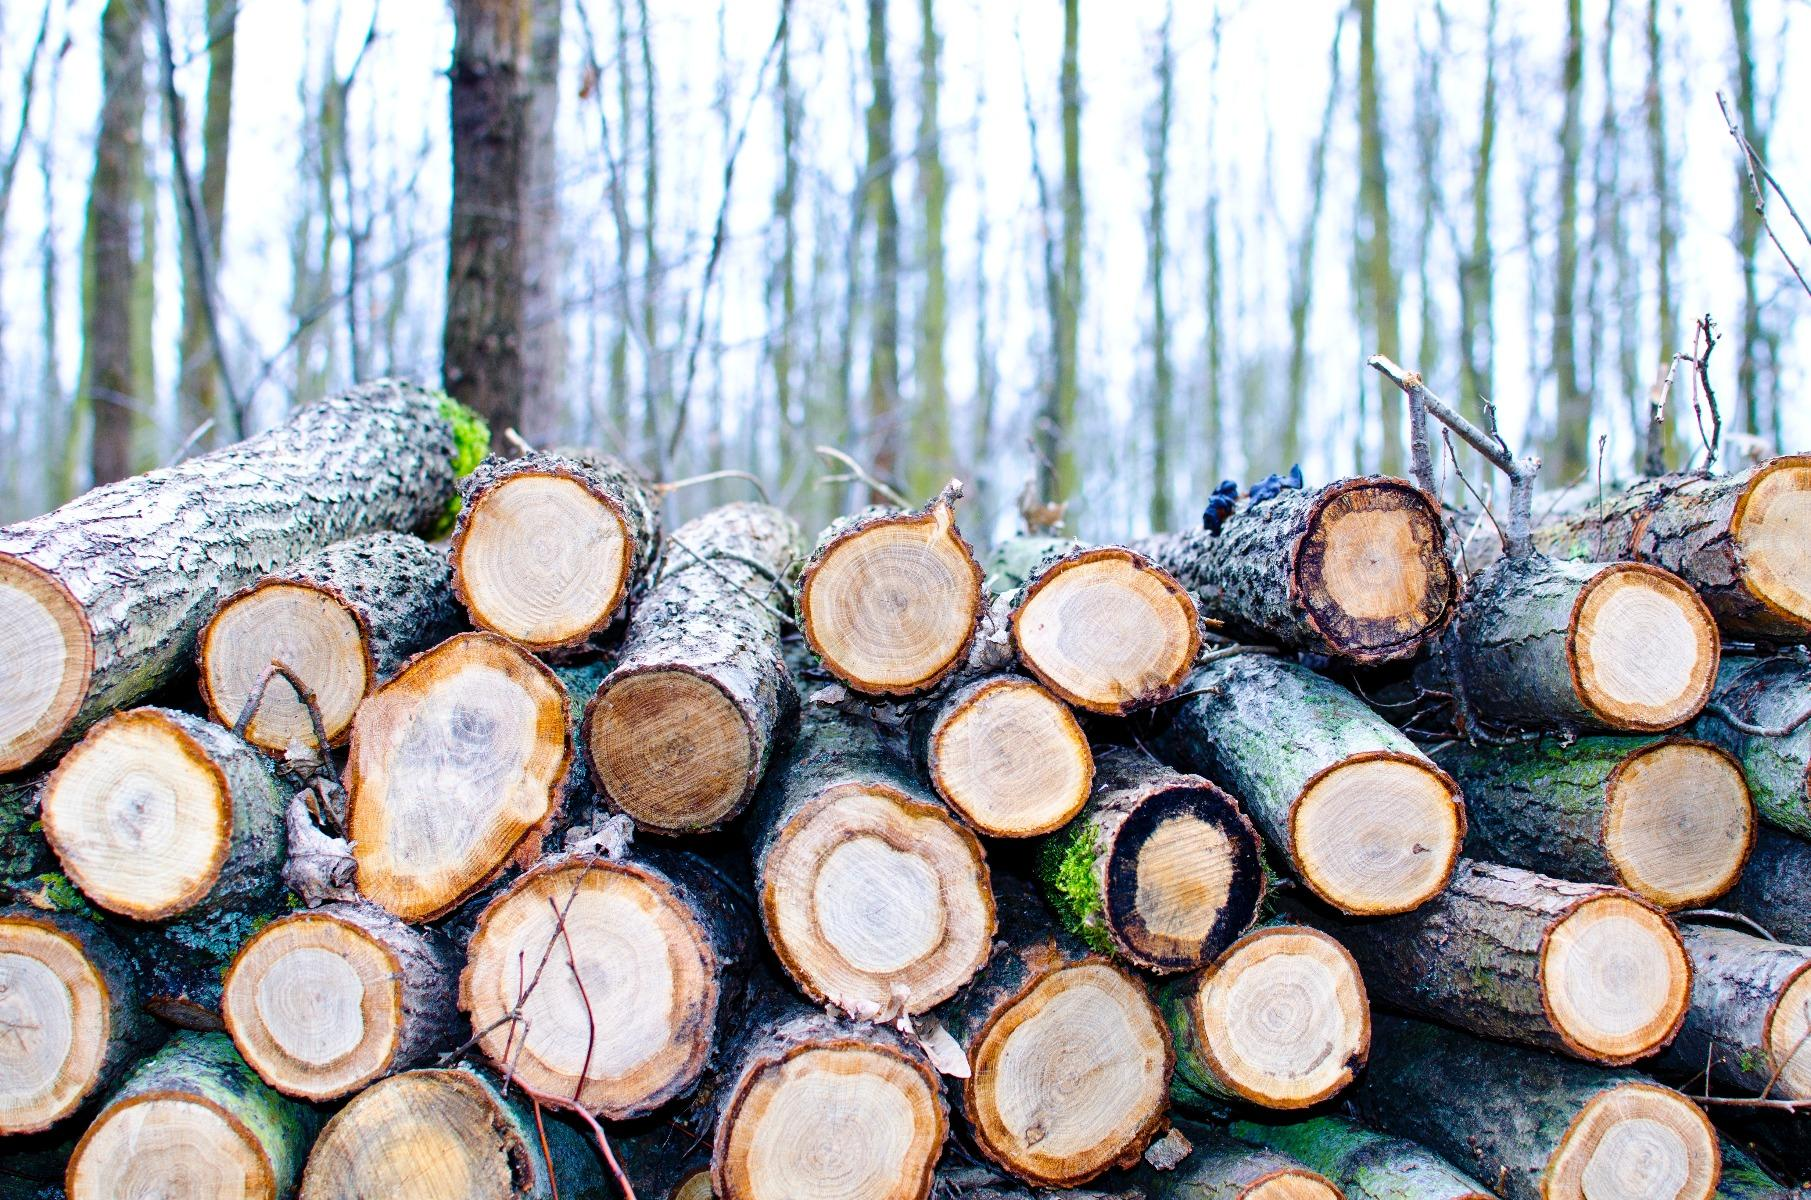 Minimal Impact Logging How To Take The Trees Youll Use Without